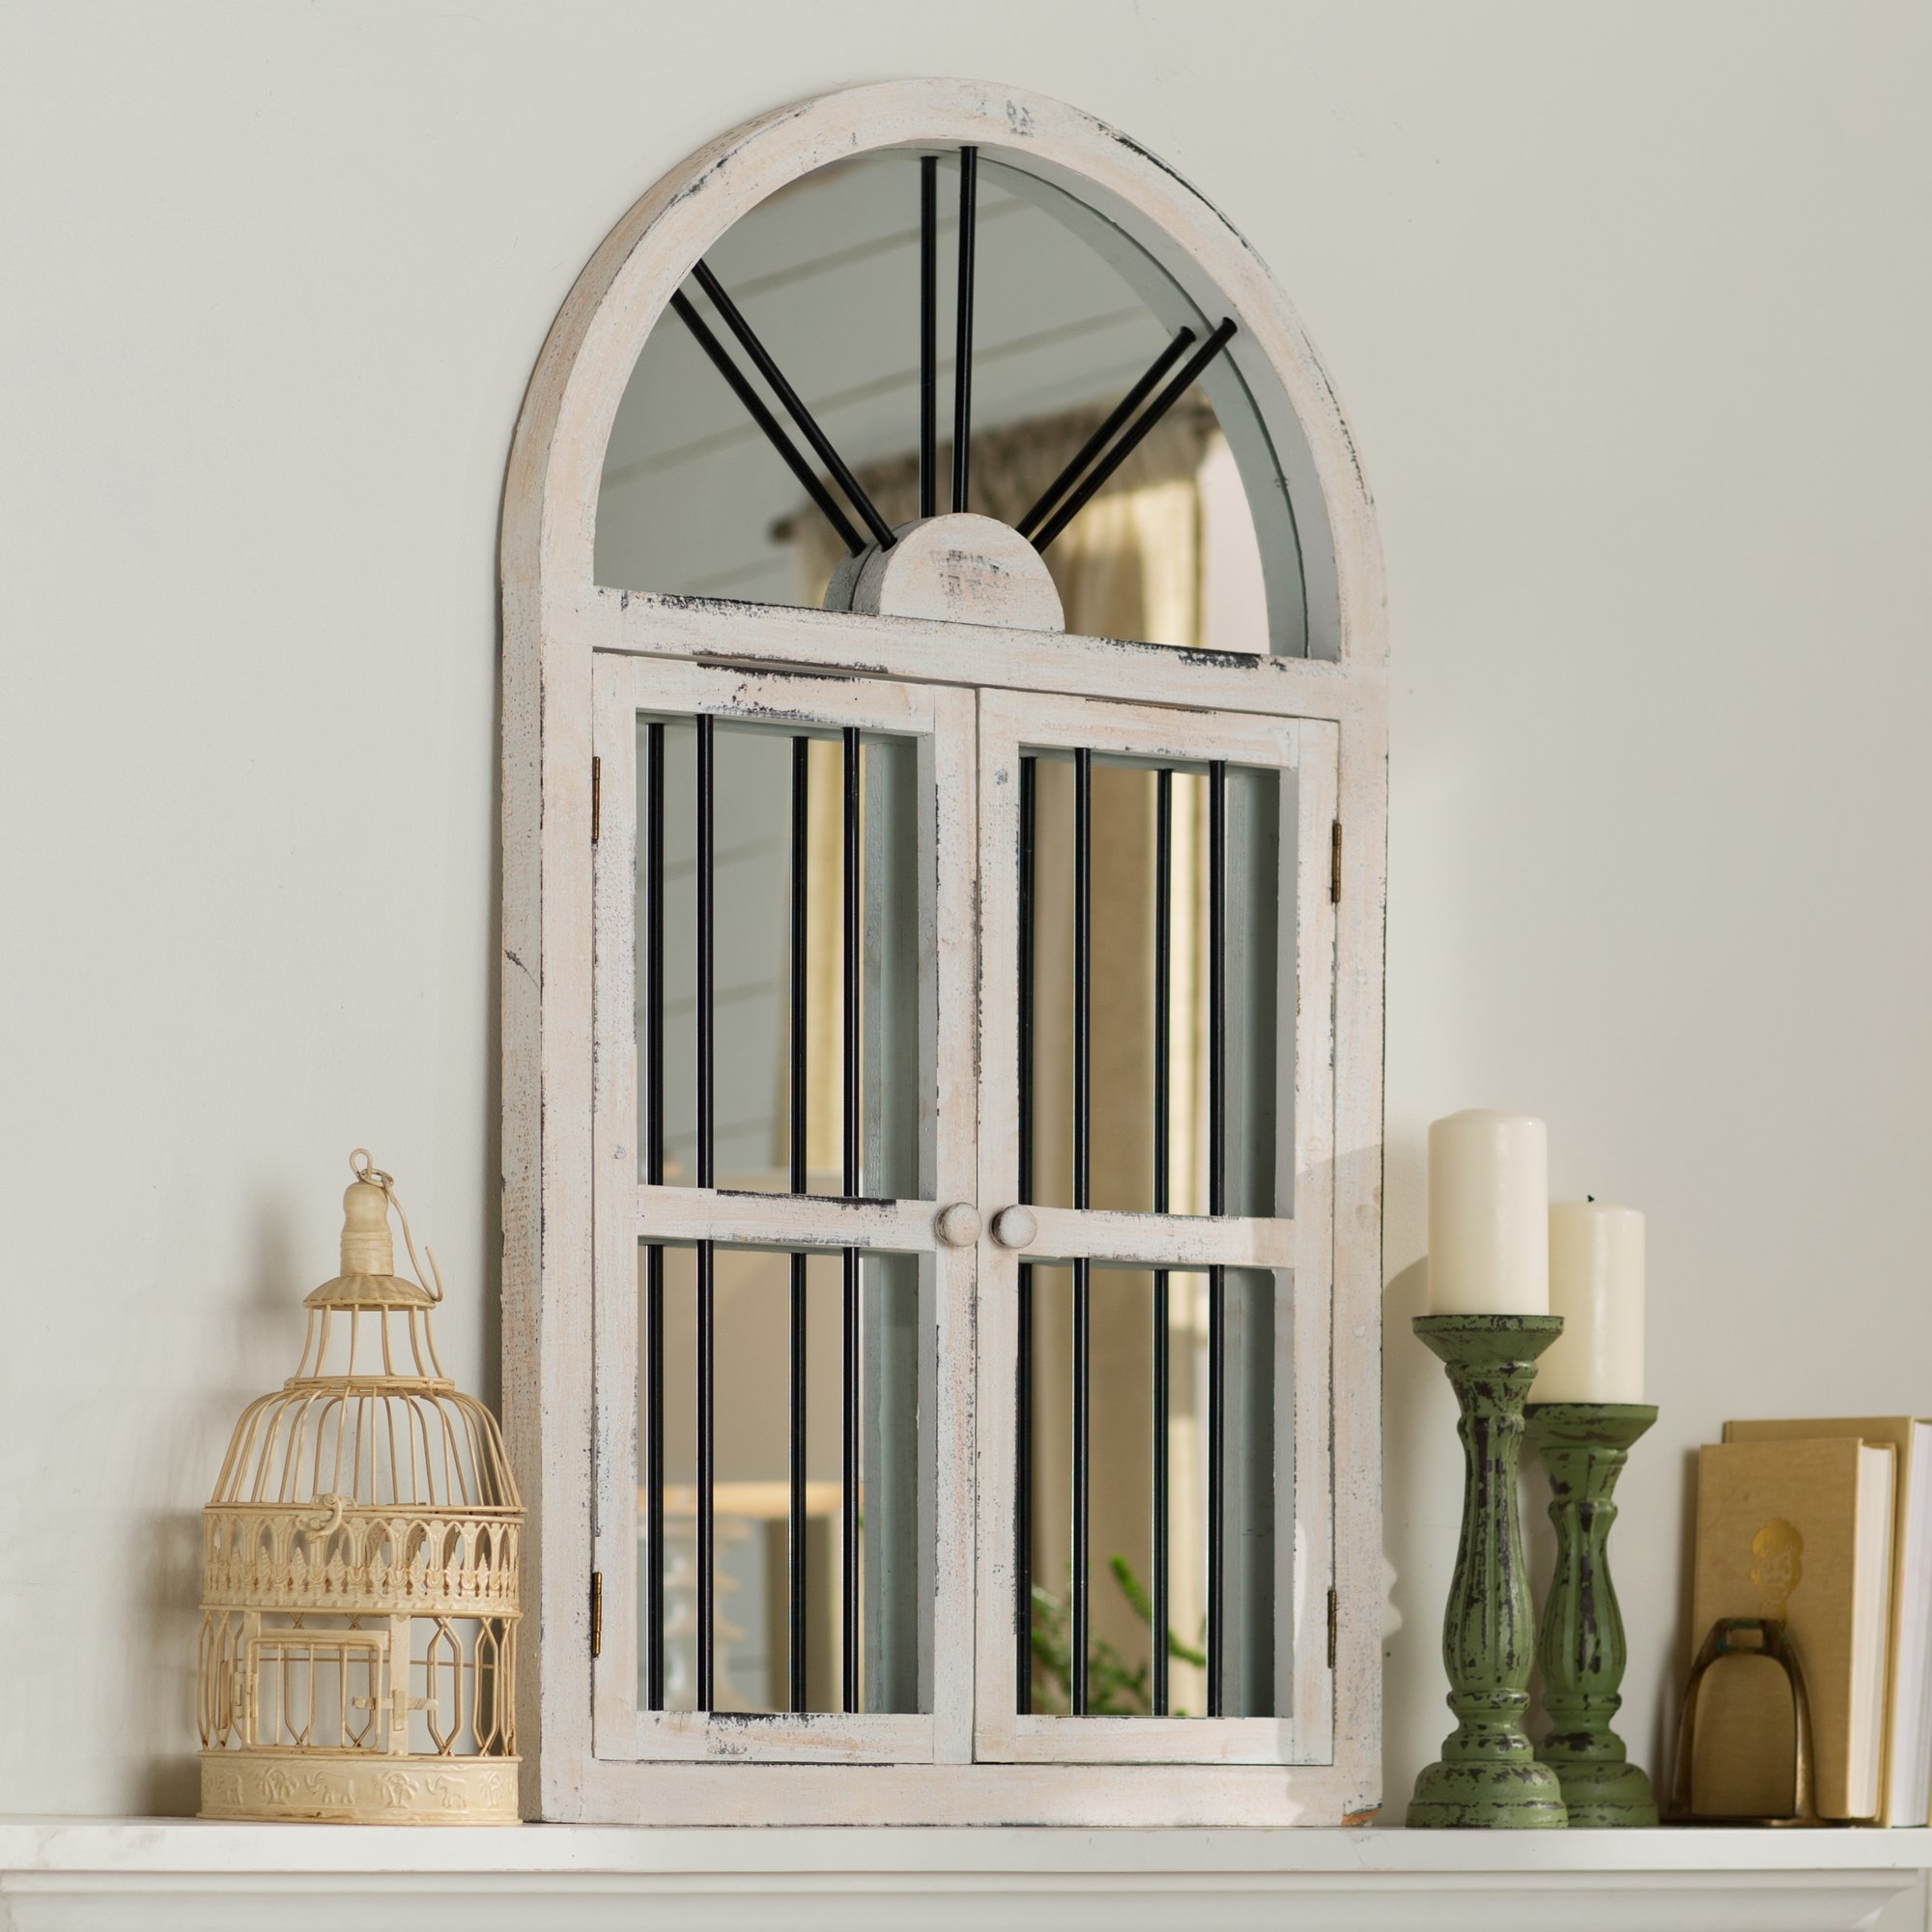 Laurel Foundry Modern Farmhouse Faux Window Wood Wall Mirror In Arched Wall Mirror (Image 10 of 15)